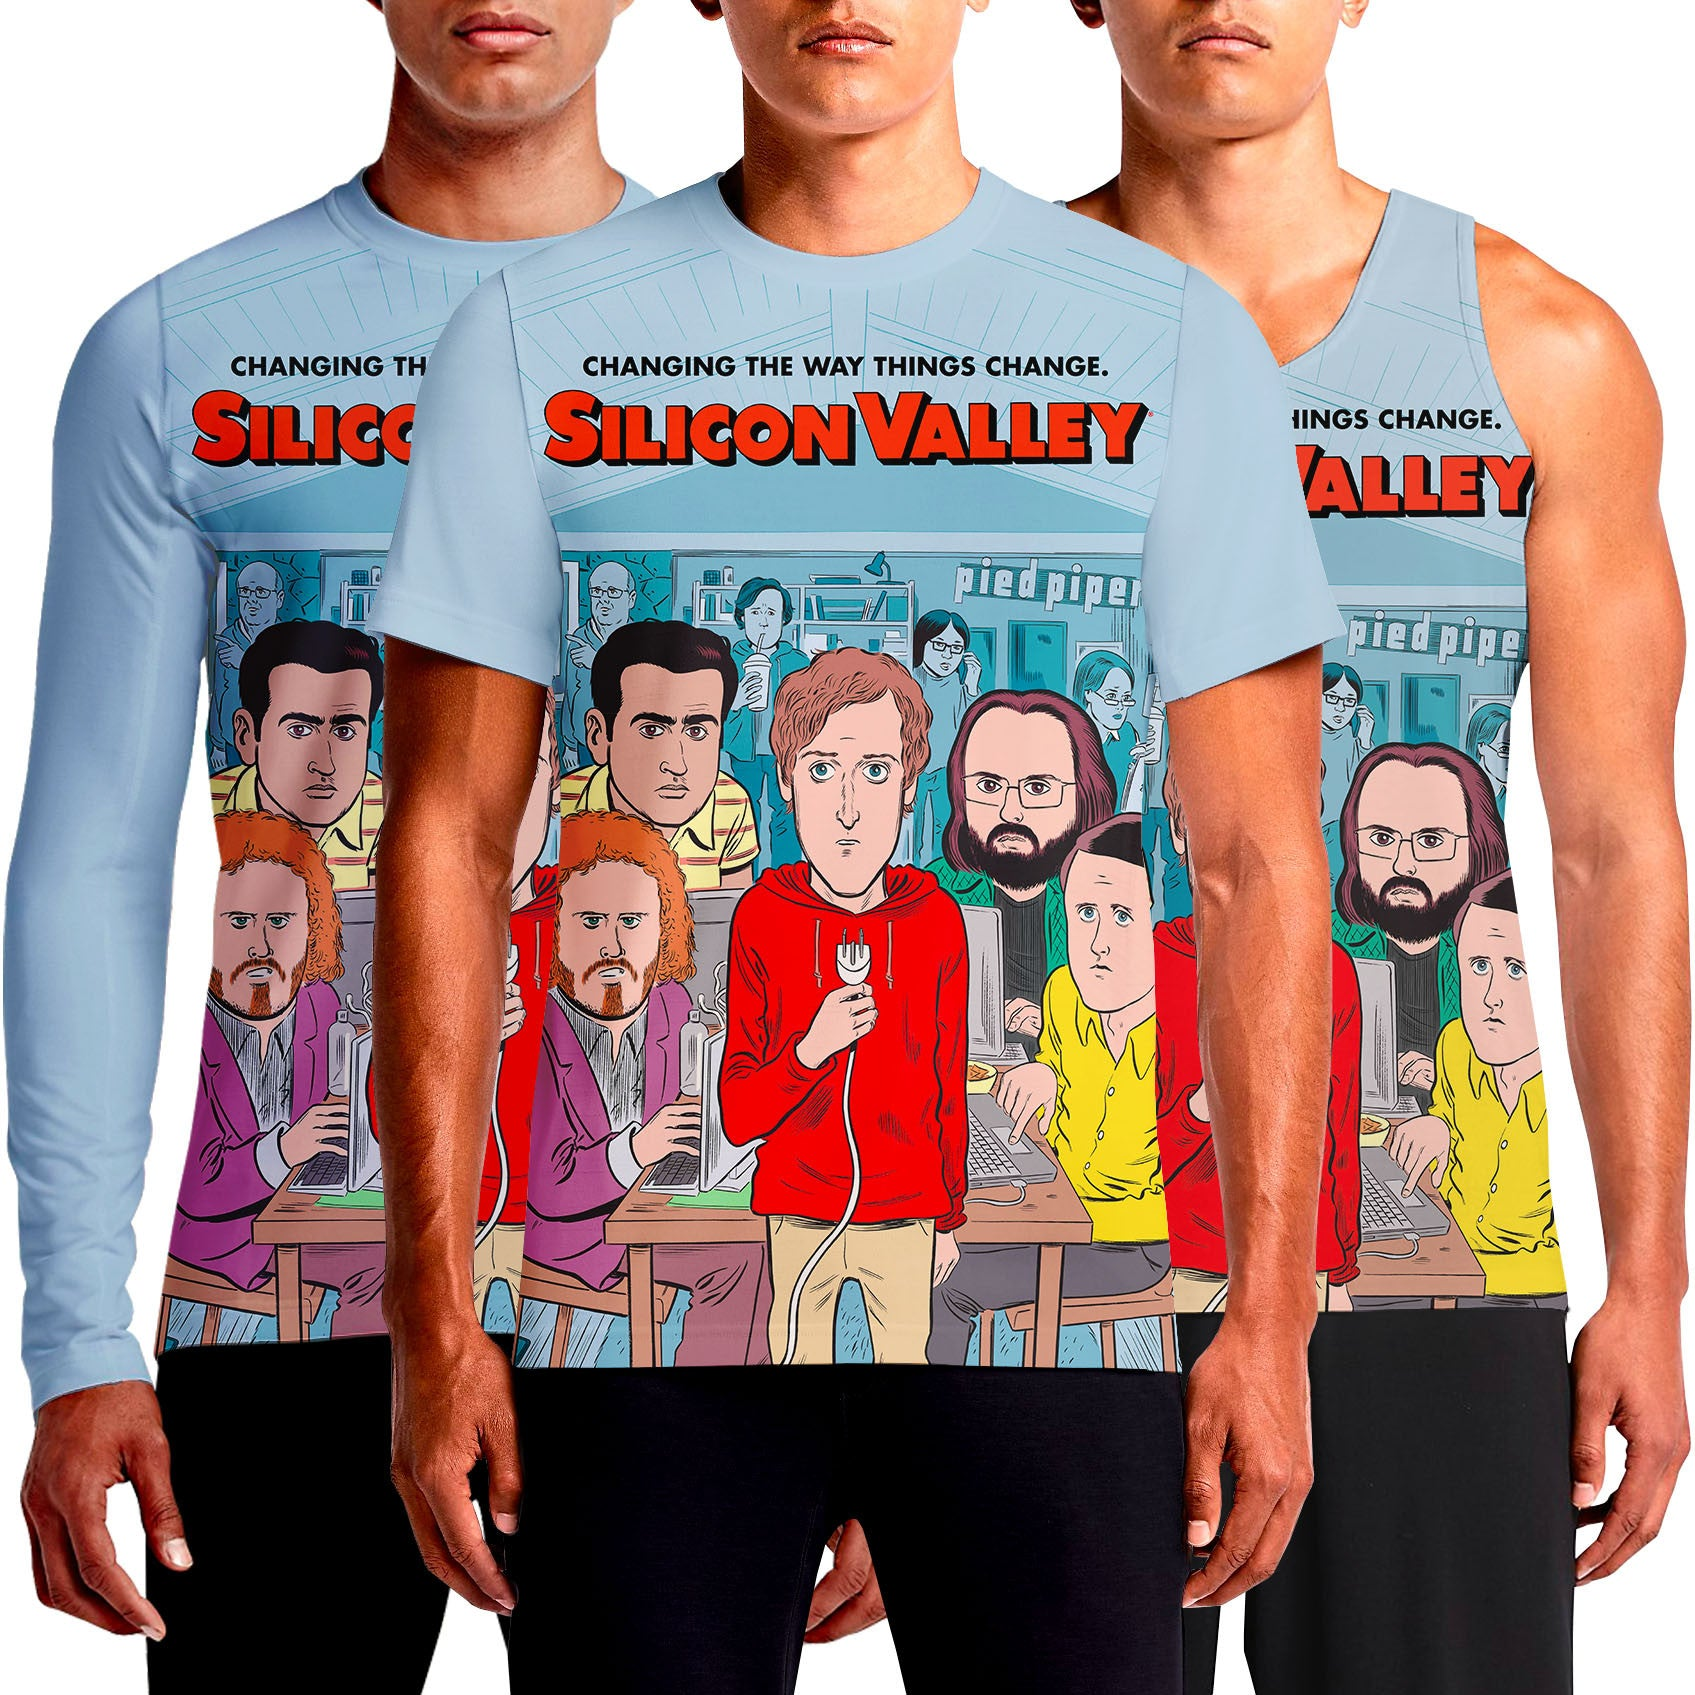 Silicon Valley T-Shirt Binary T Shirt India Shirts Aviato Bitcoin Html Comic Con Code Erlich HBO On Pied Piper Show Season 2 Tv Tv Show T-Shirt T-Shirts Online